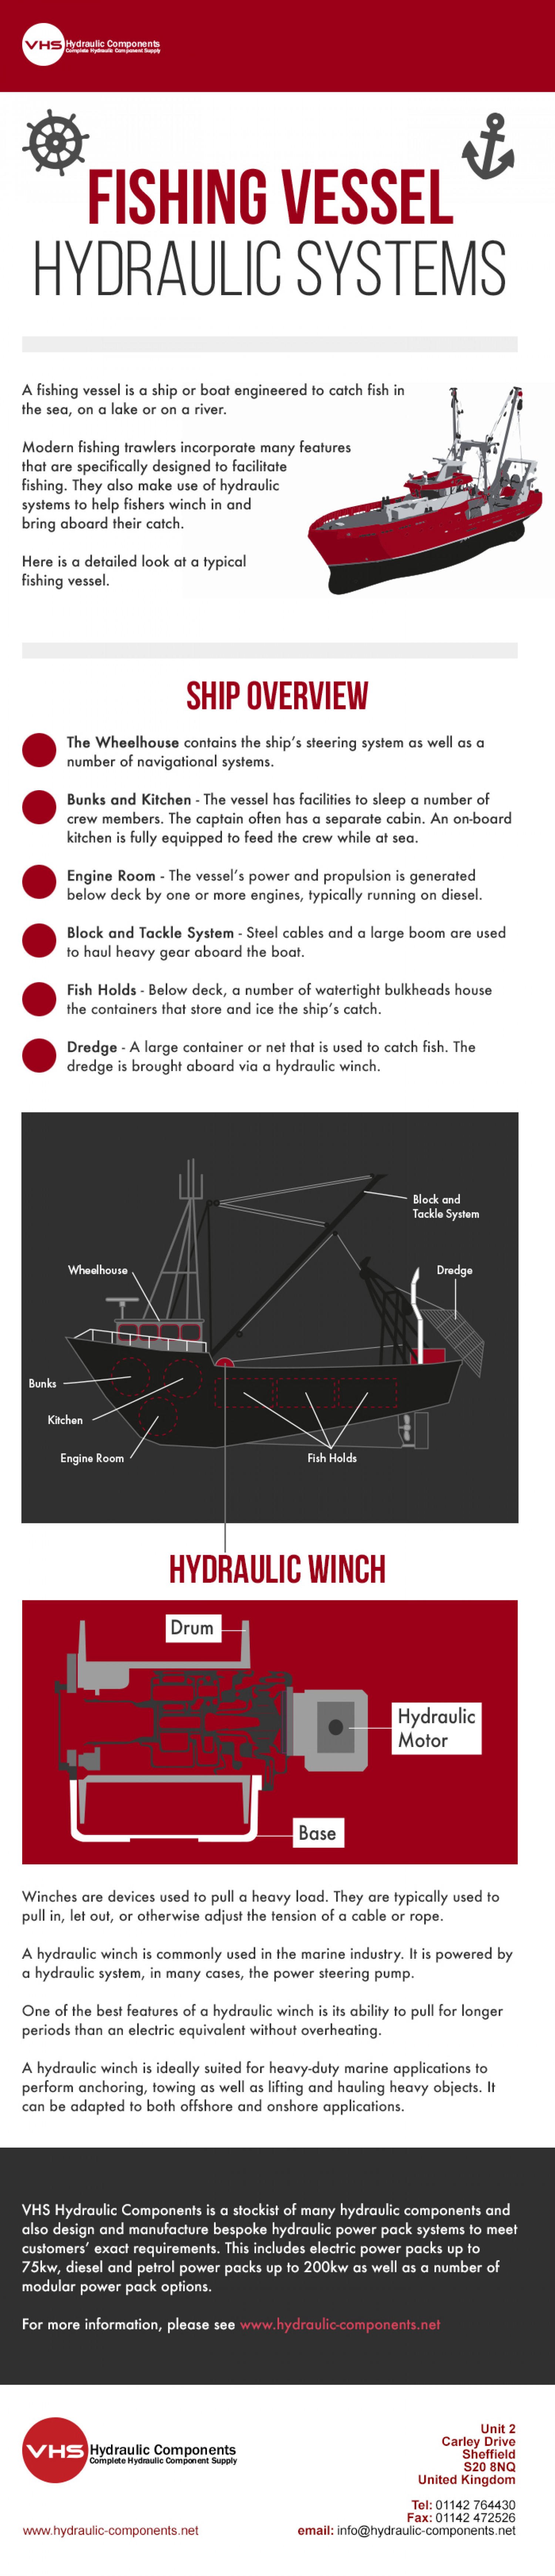 Fishing Vessel Hydraulic Systems Infographic